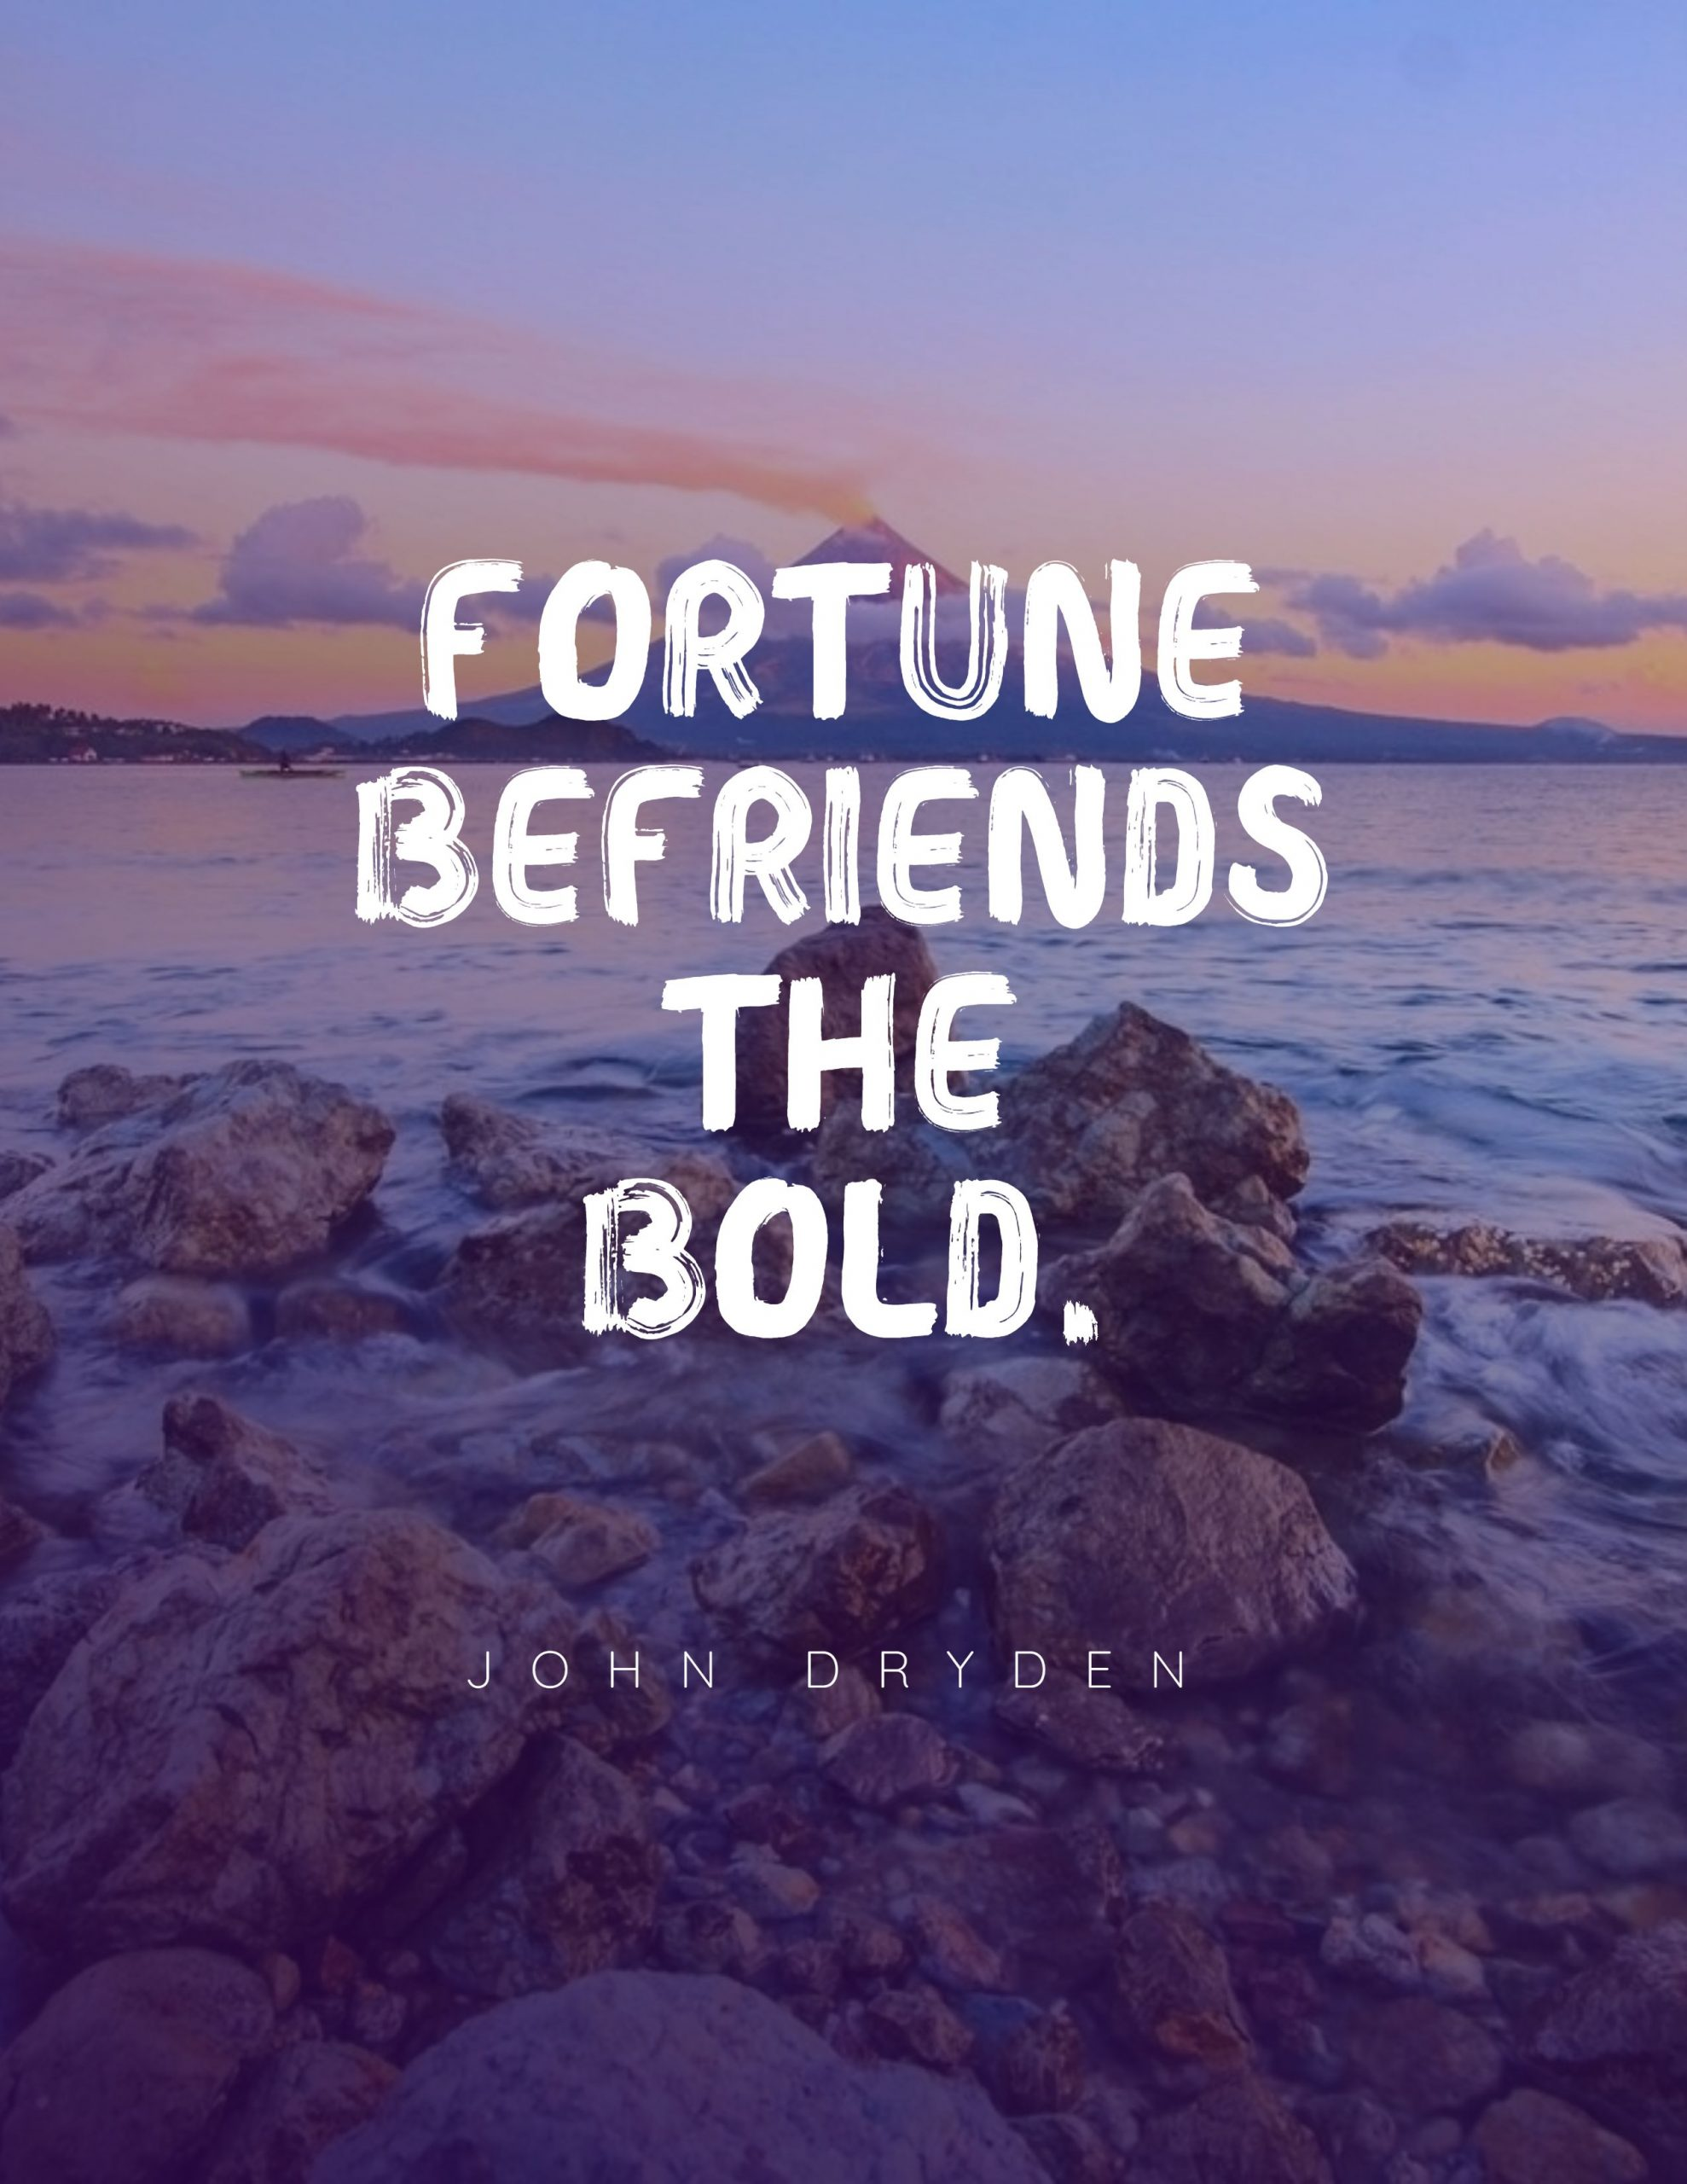 Quotes image of Fortune befriends the bold.